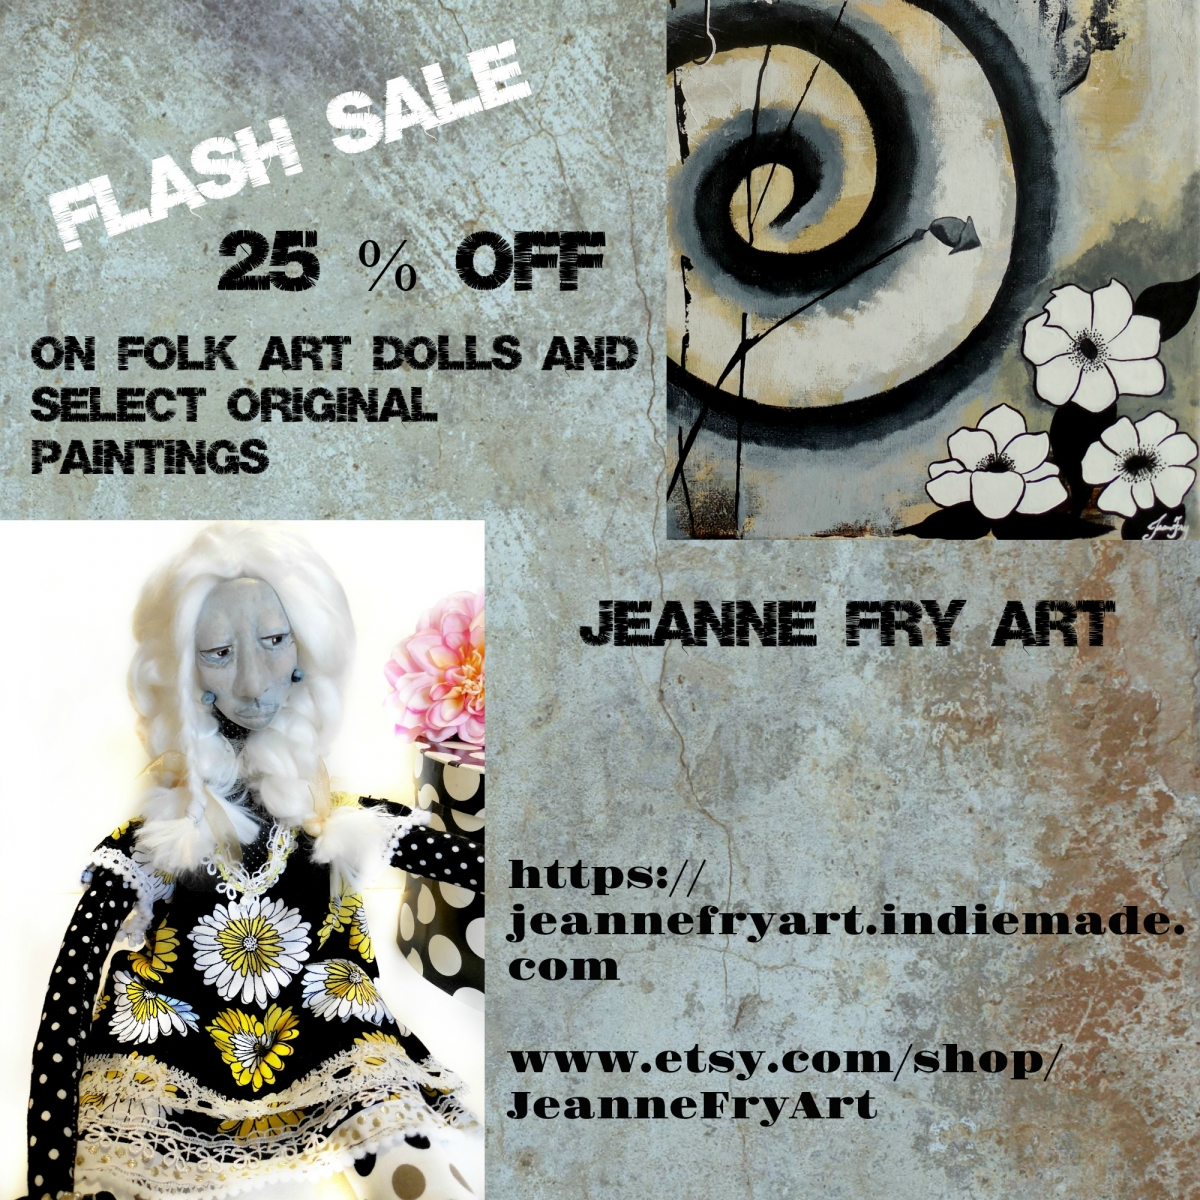 May Flash Sale on Folk Art Dolls and Original Paintings from Jeanne Fry Art